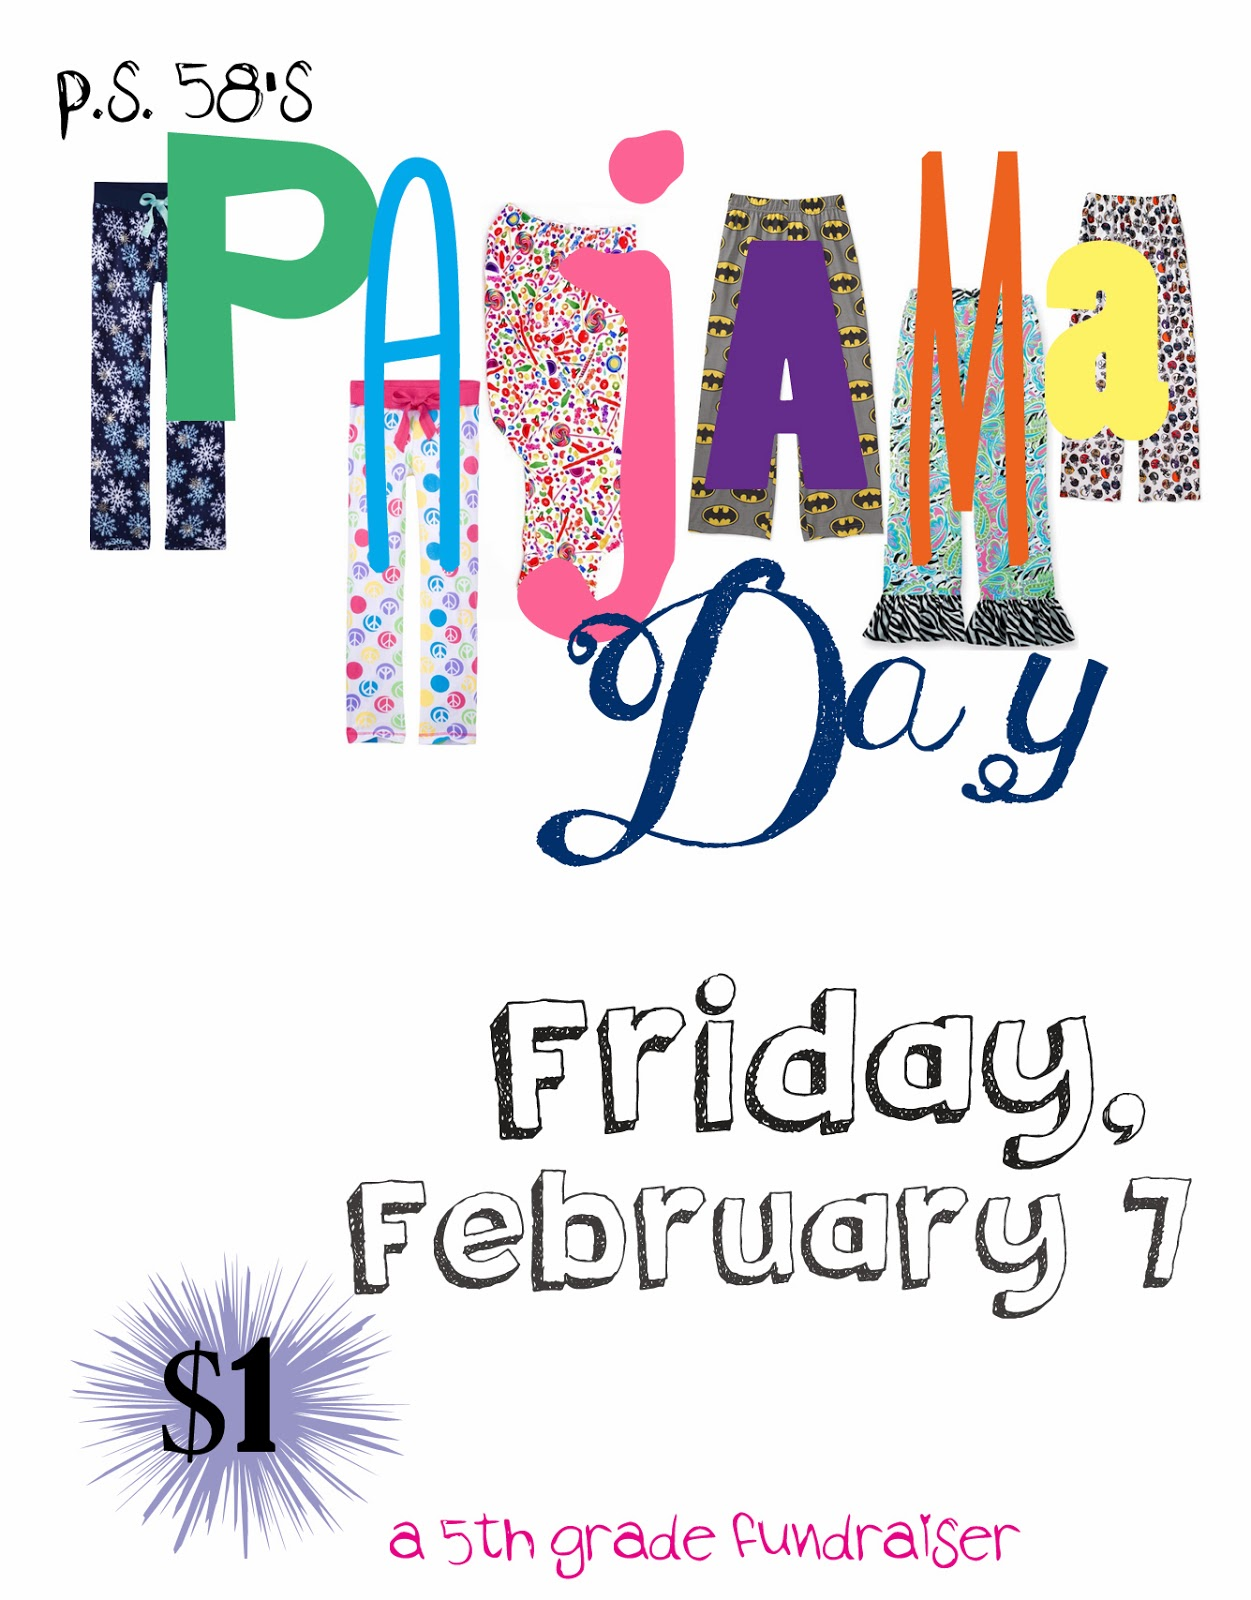 Class 5 316 Pajama Day Is Coming Up